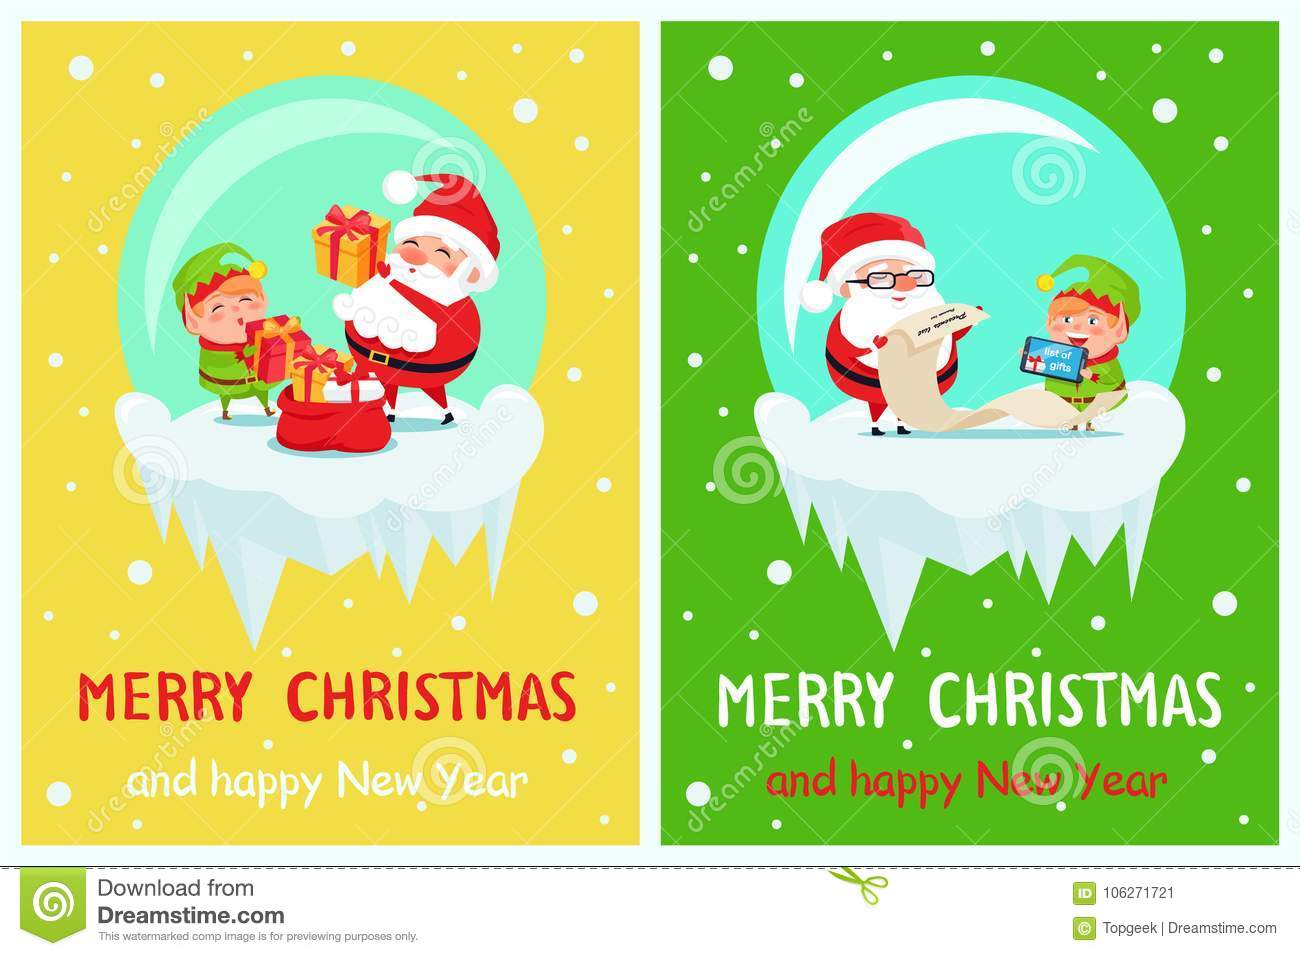 Christmas Posters.Happy New Year Merry Christmas Poster Santa Elf Stock Vector